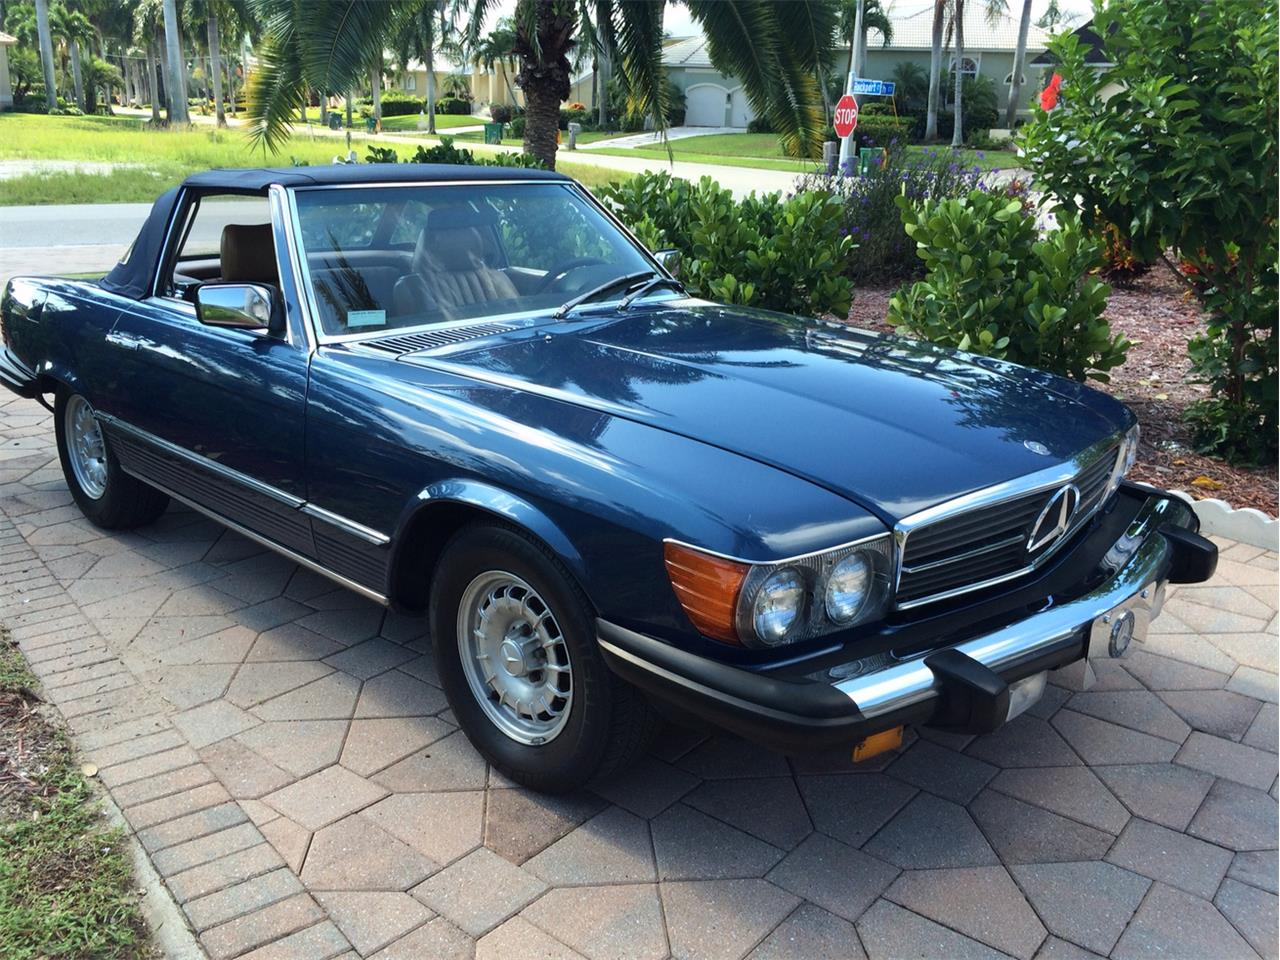 1985 Mercedes-Benz 380SL for sale in Marco Island, FL – photo 3